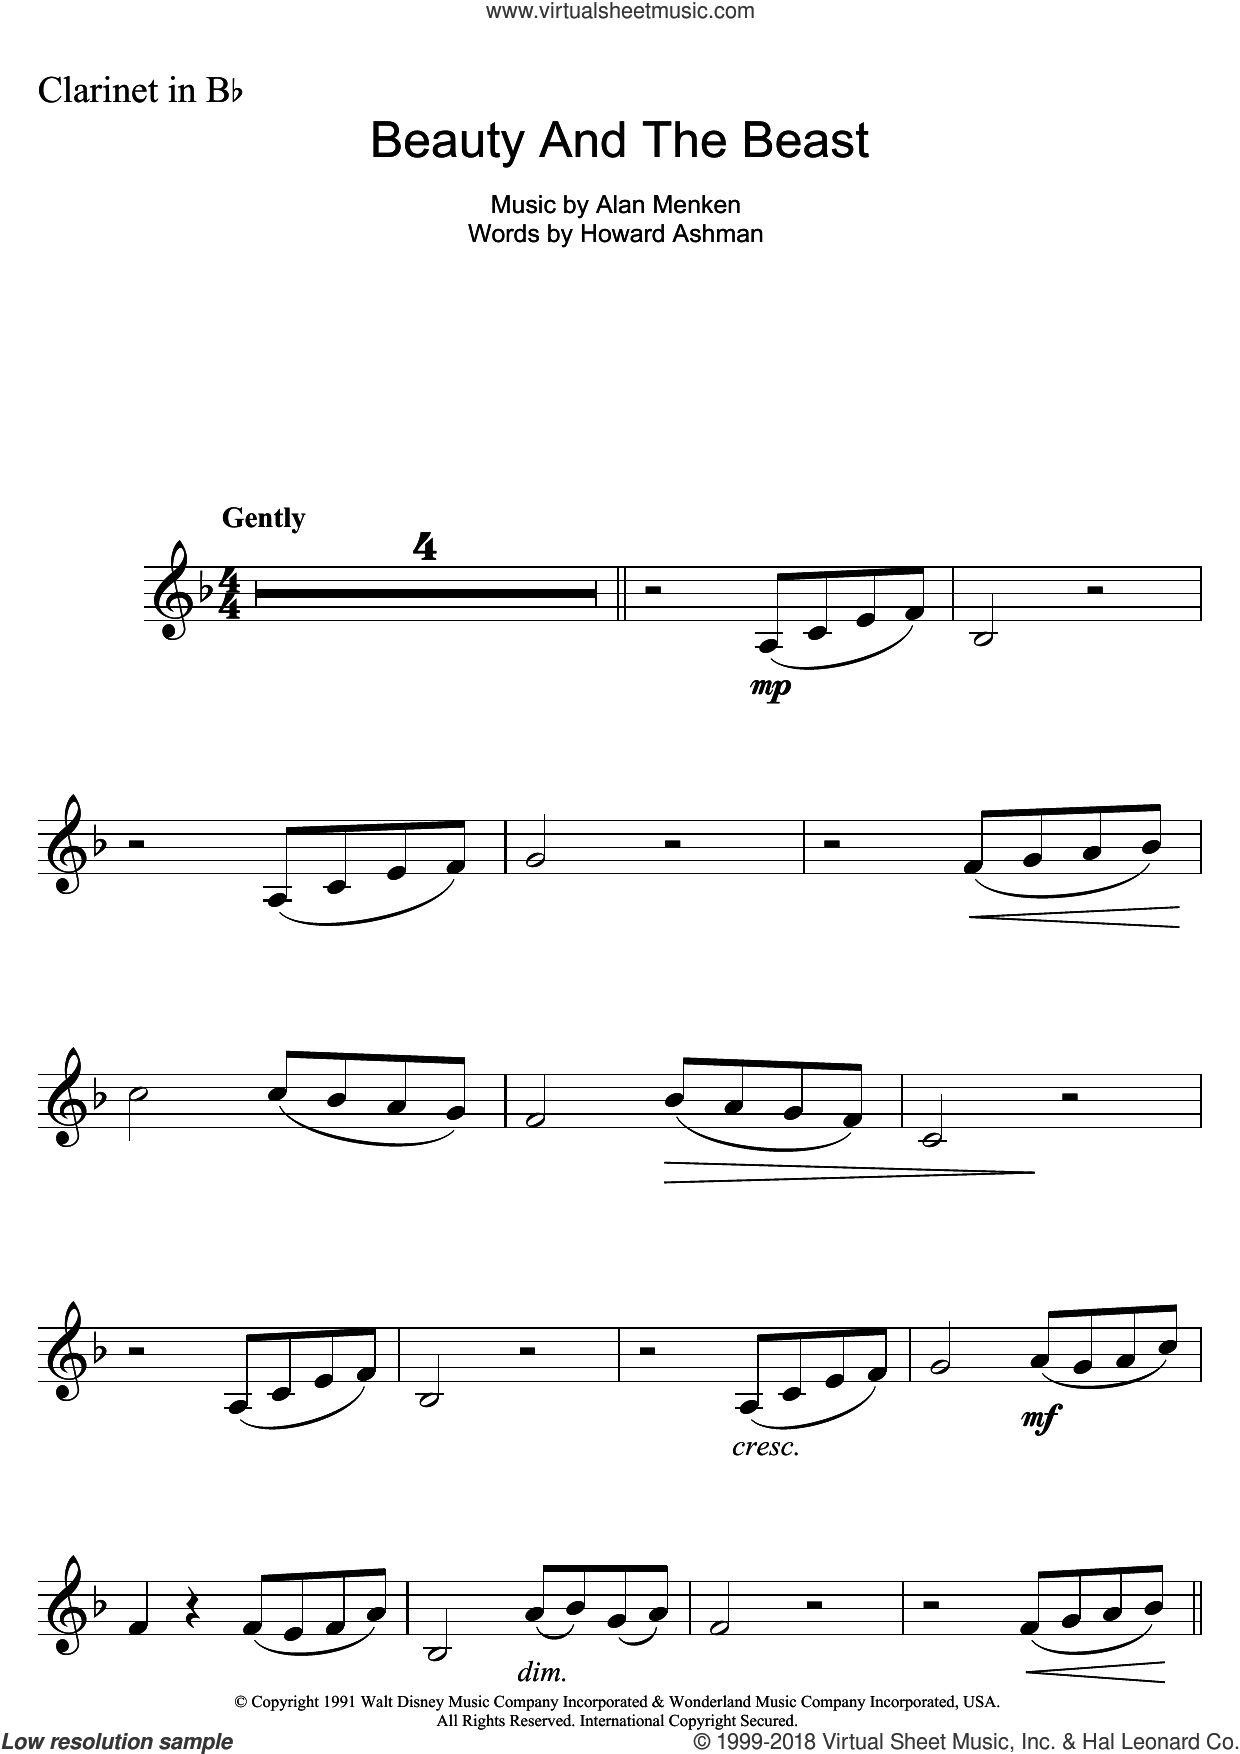 Beauty And The Beast sheet music for clarinet solo by Alan Menken and Howard Ashman, intermediate skill level